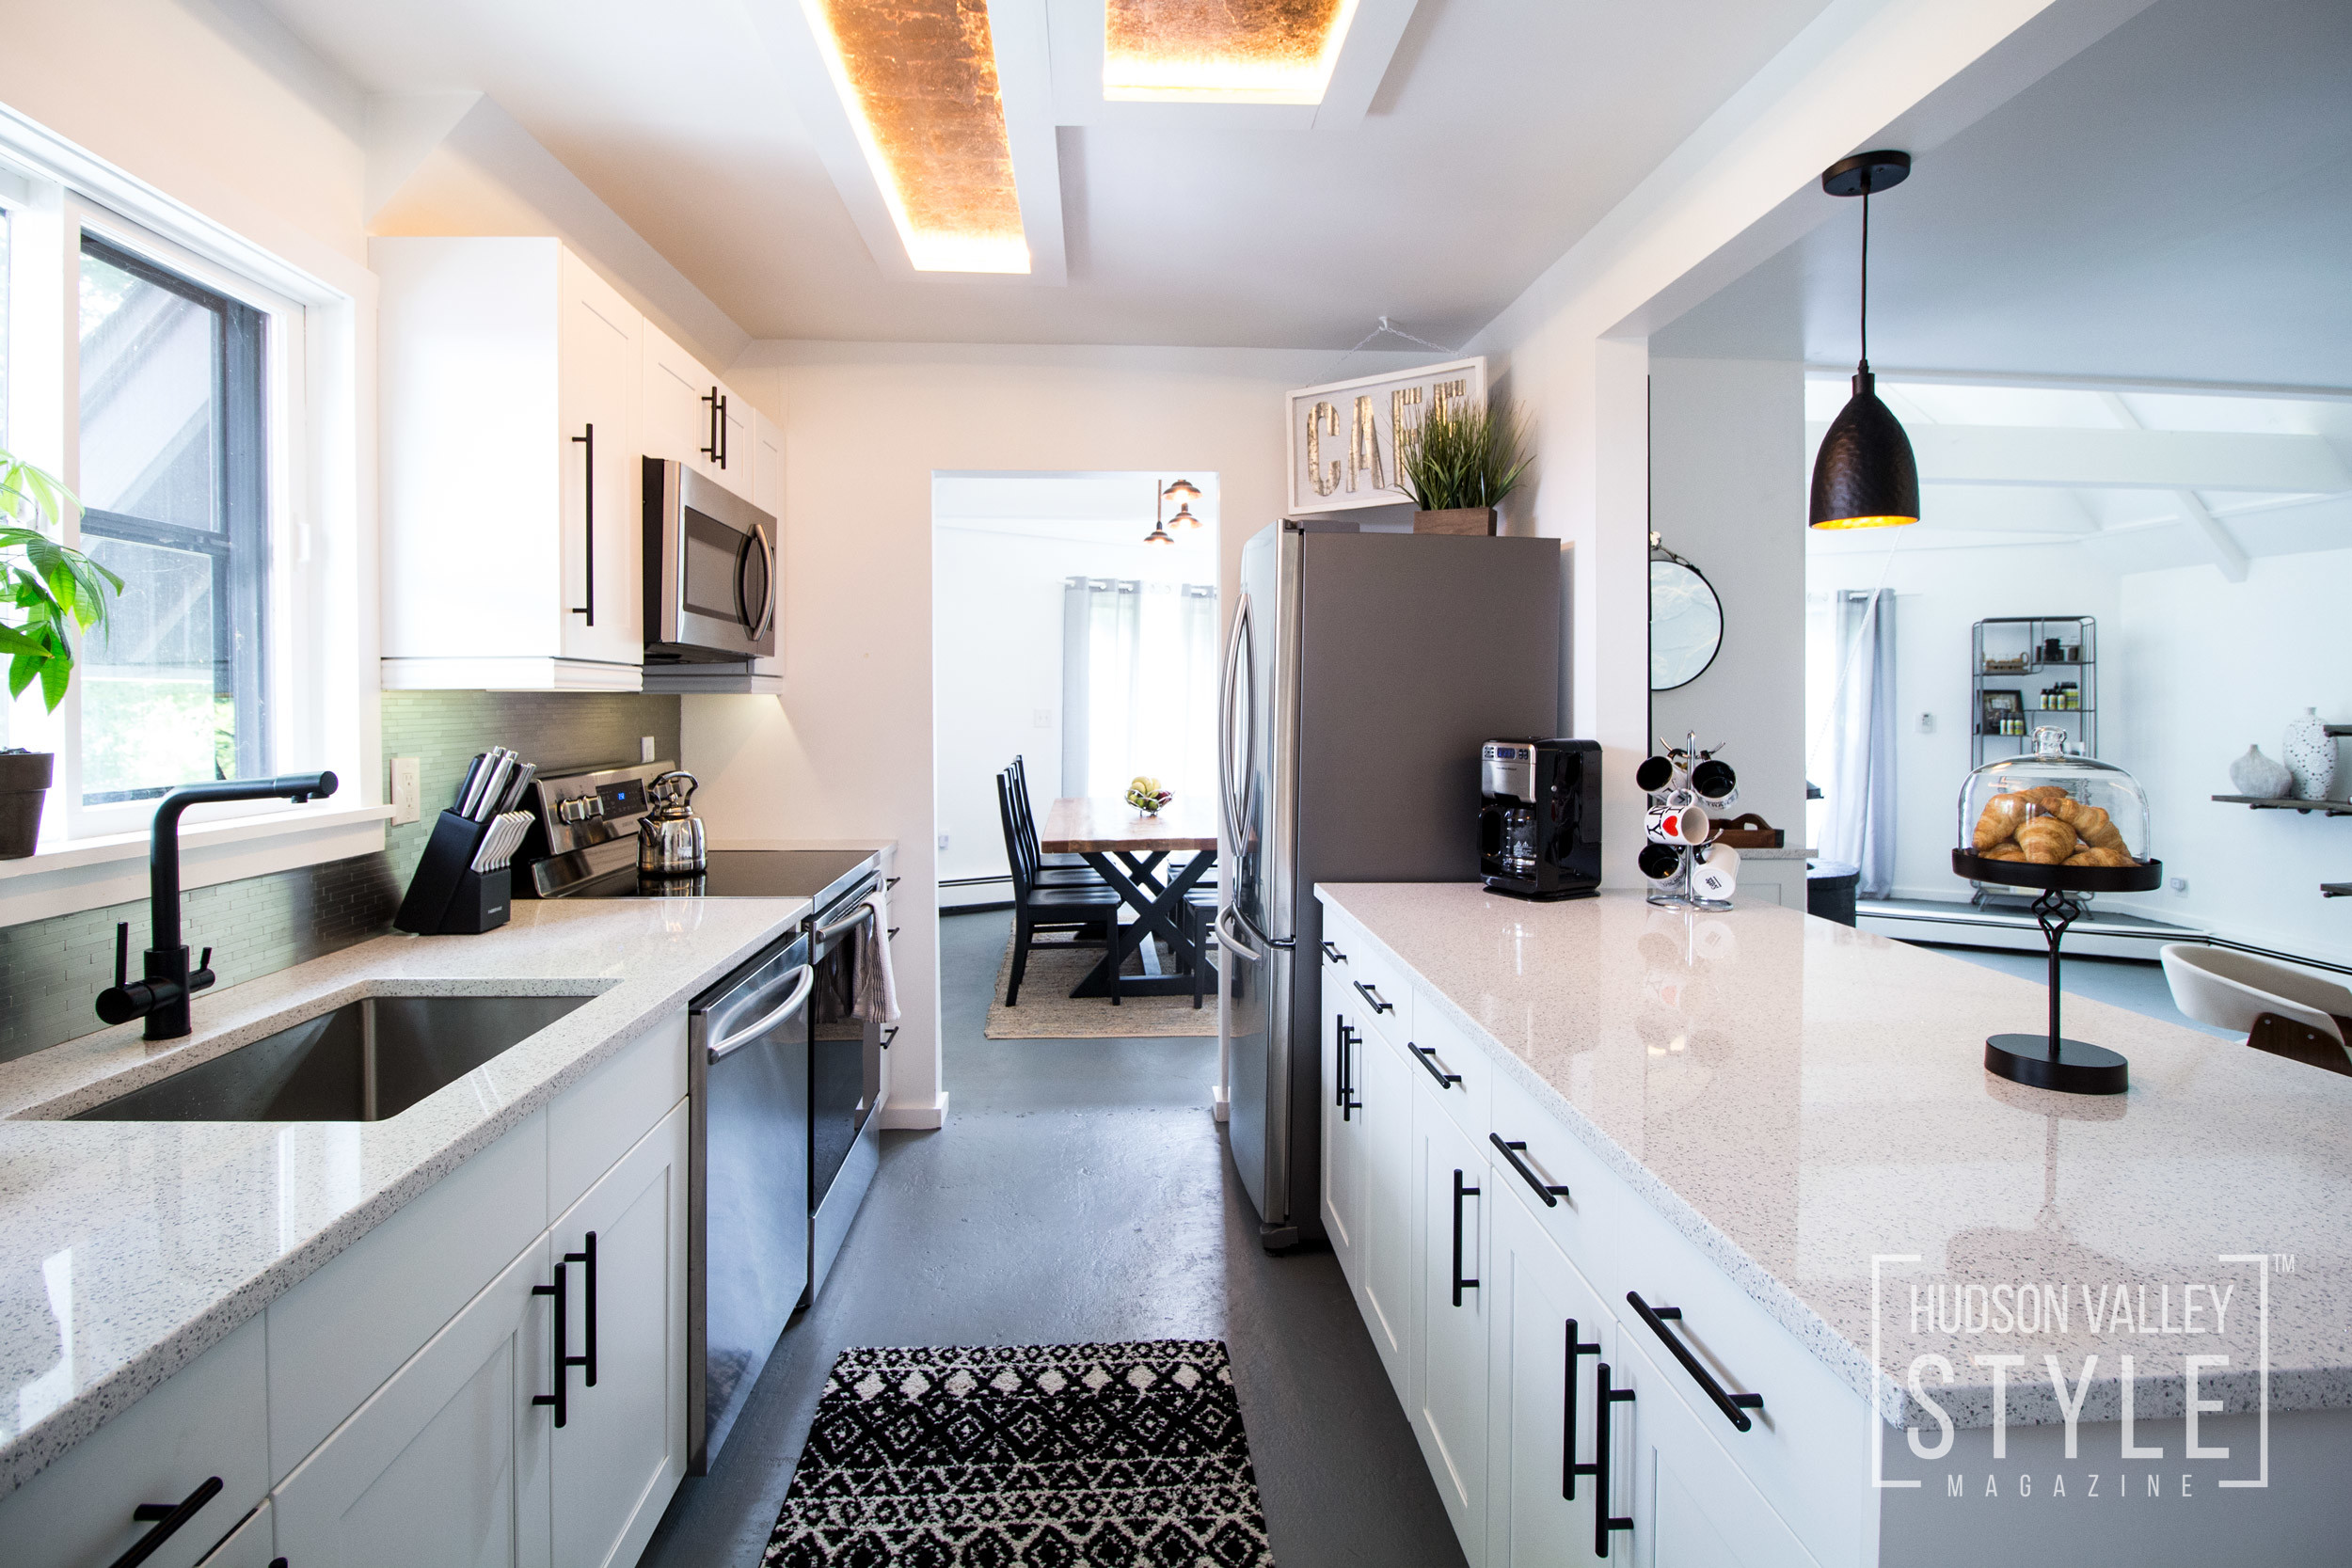 How to design your kitchen like a Millennial - 2019 Kitchen Design Trends - Hudson Valley Style Magazine by Designer Maxwell Alexander, Editor in Chief, Hudson Valley Style Magazine